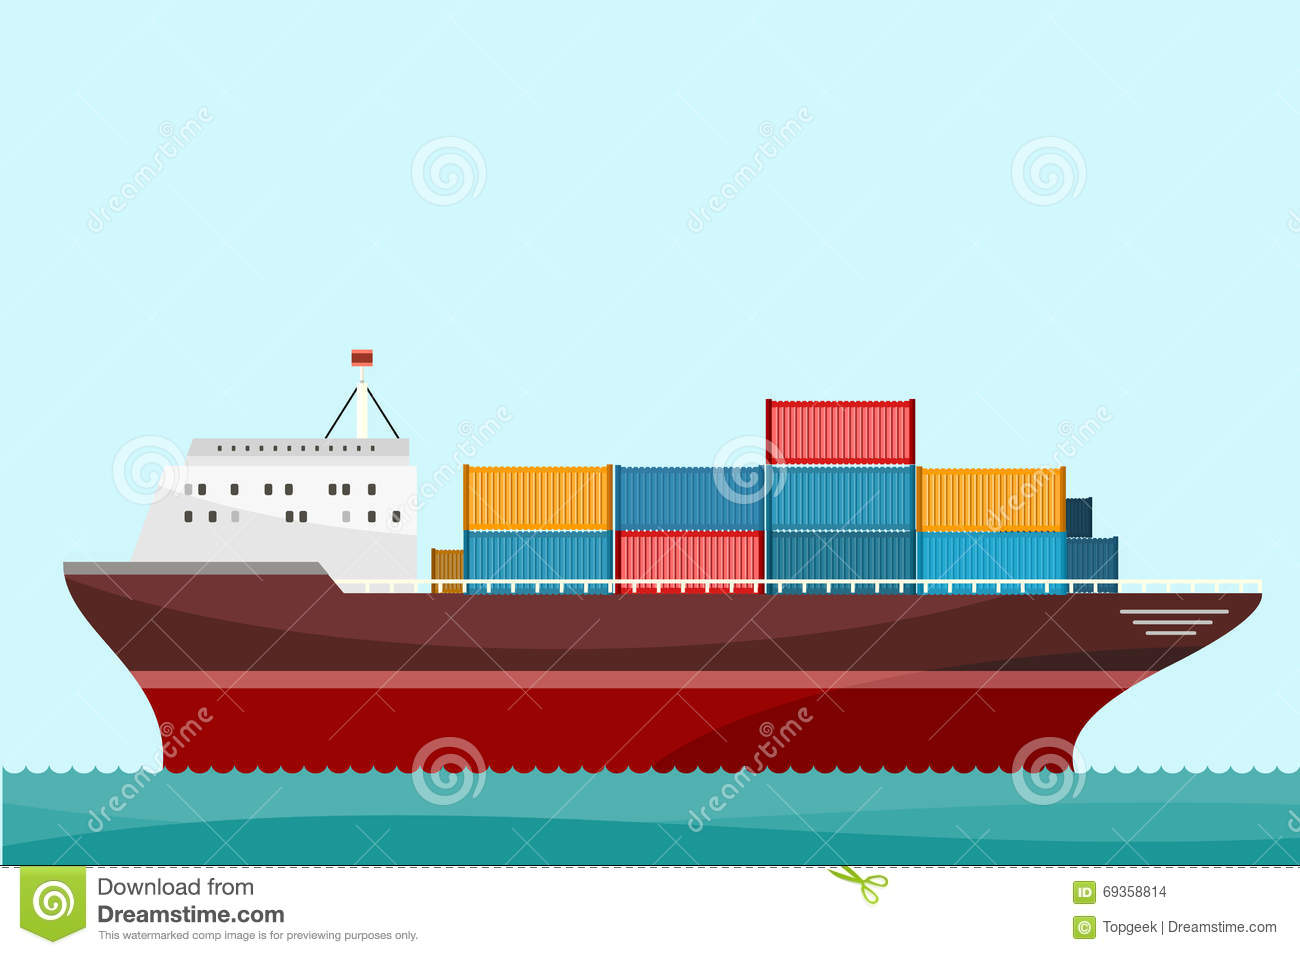 cargo ship containers shipping stock vector illustration of large deck 69358814. Black Bedroom Furniture Sets. Home Design Ideas